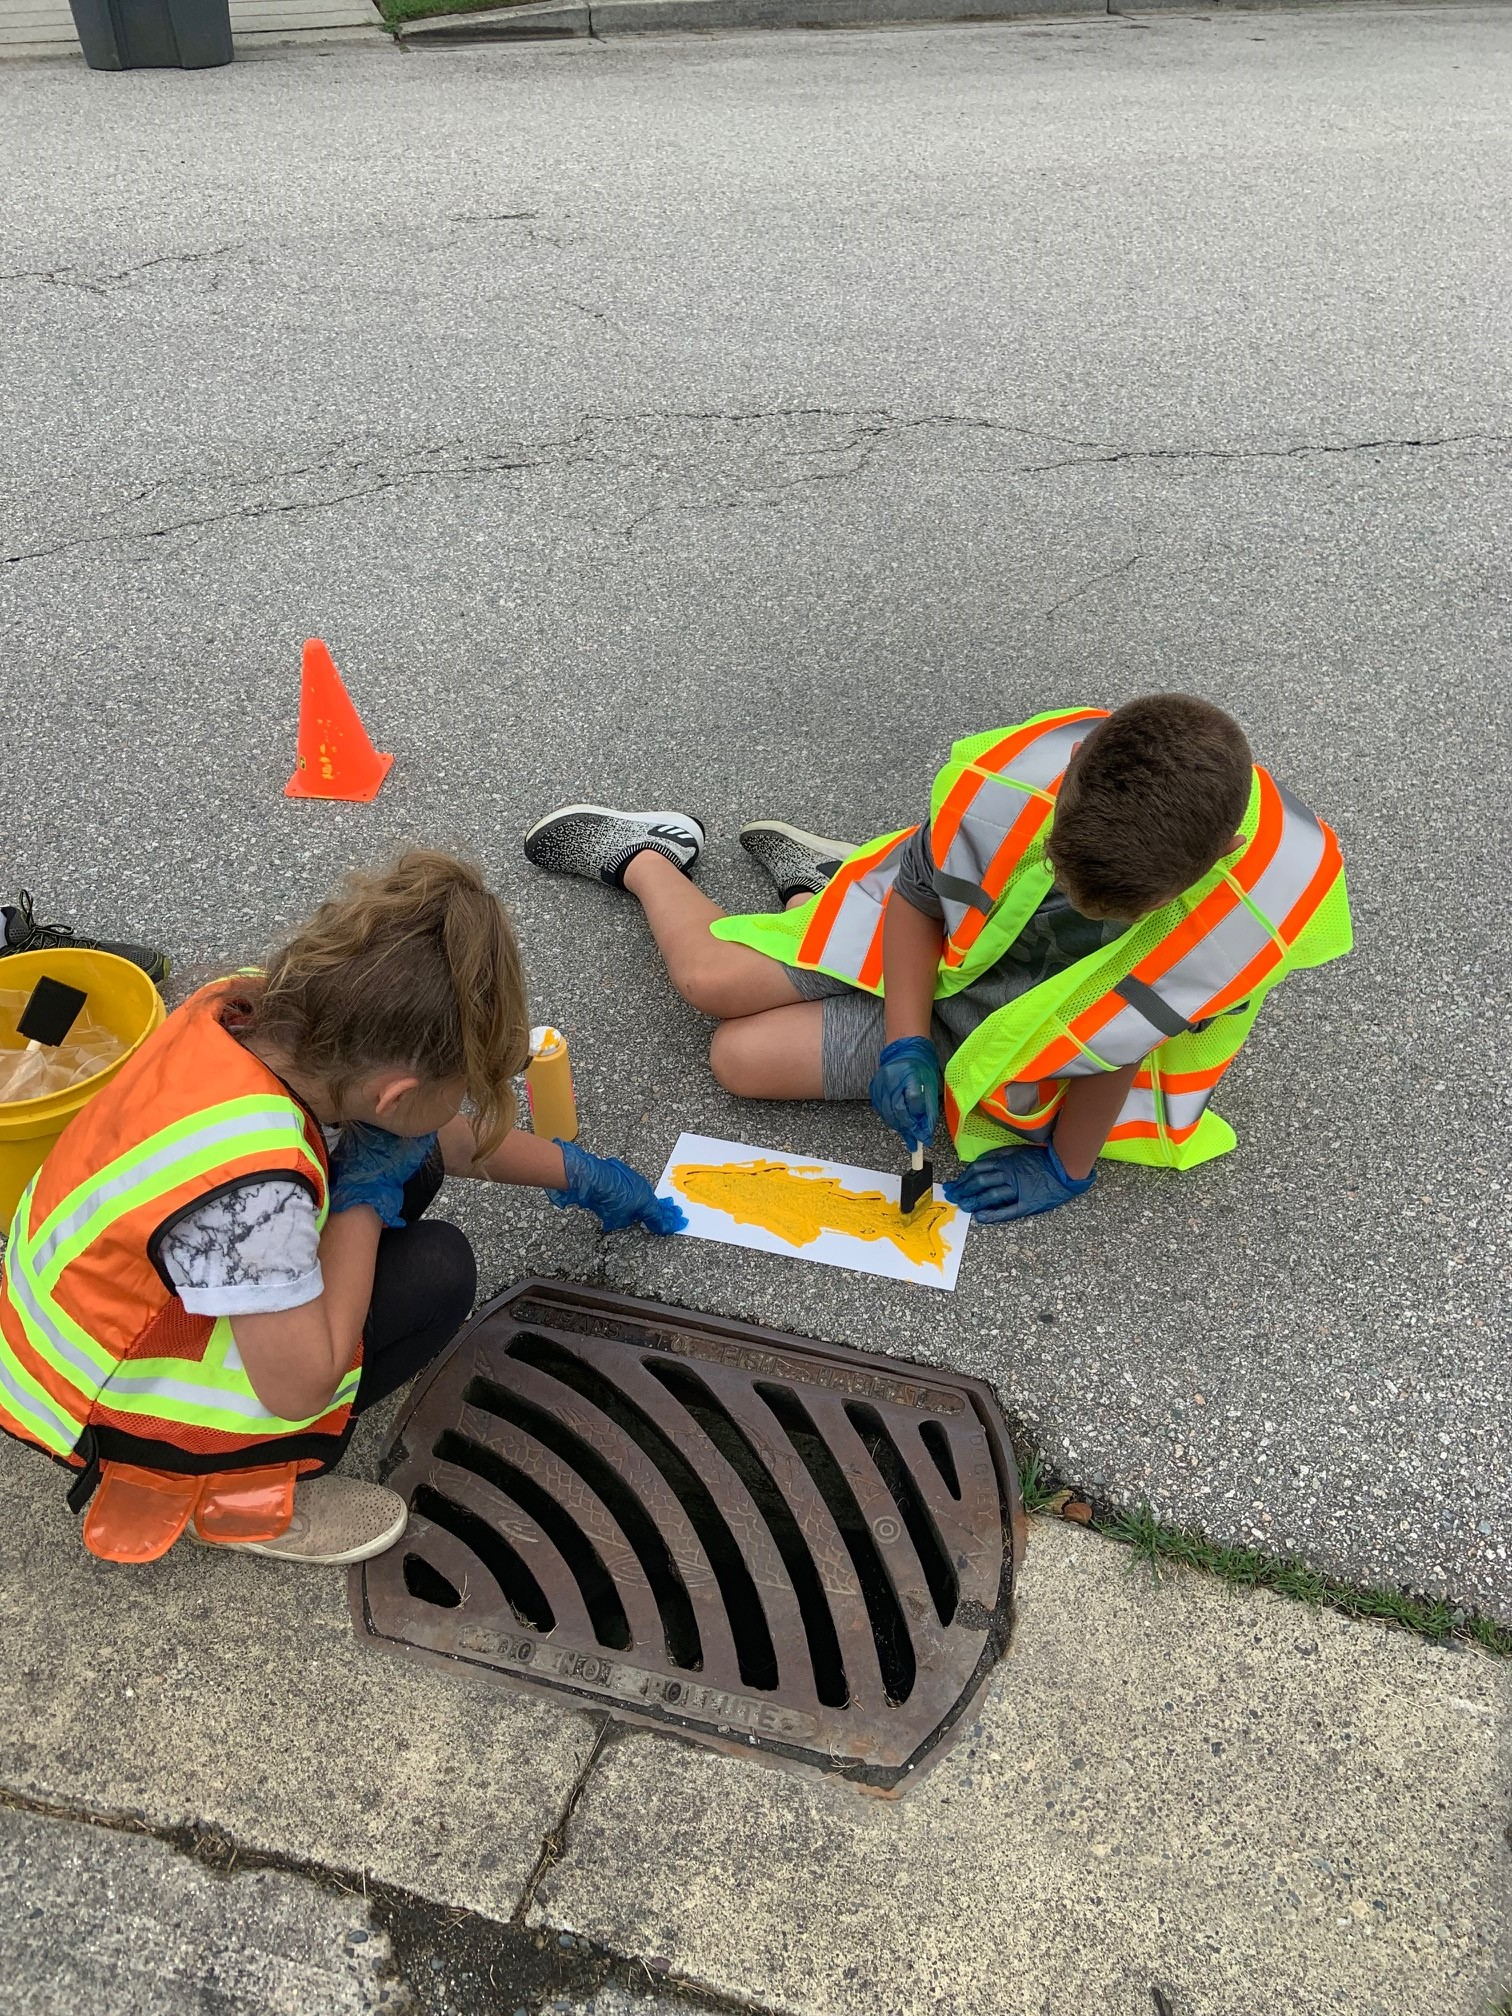 Channel your inner Picasso in the City of Surrey's 'Storm Drain Marking Challenge'!